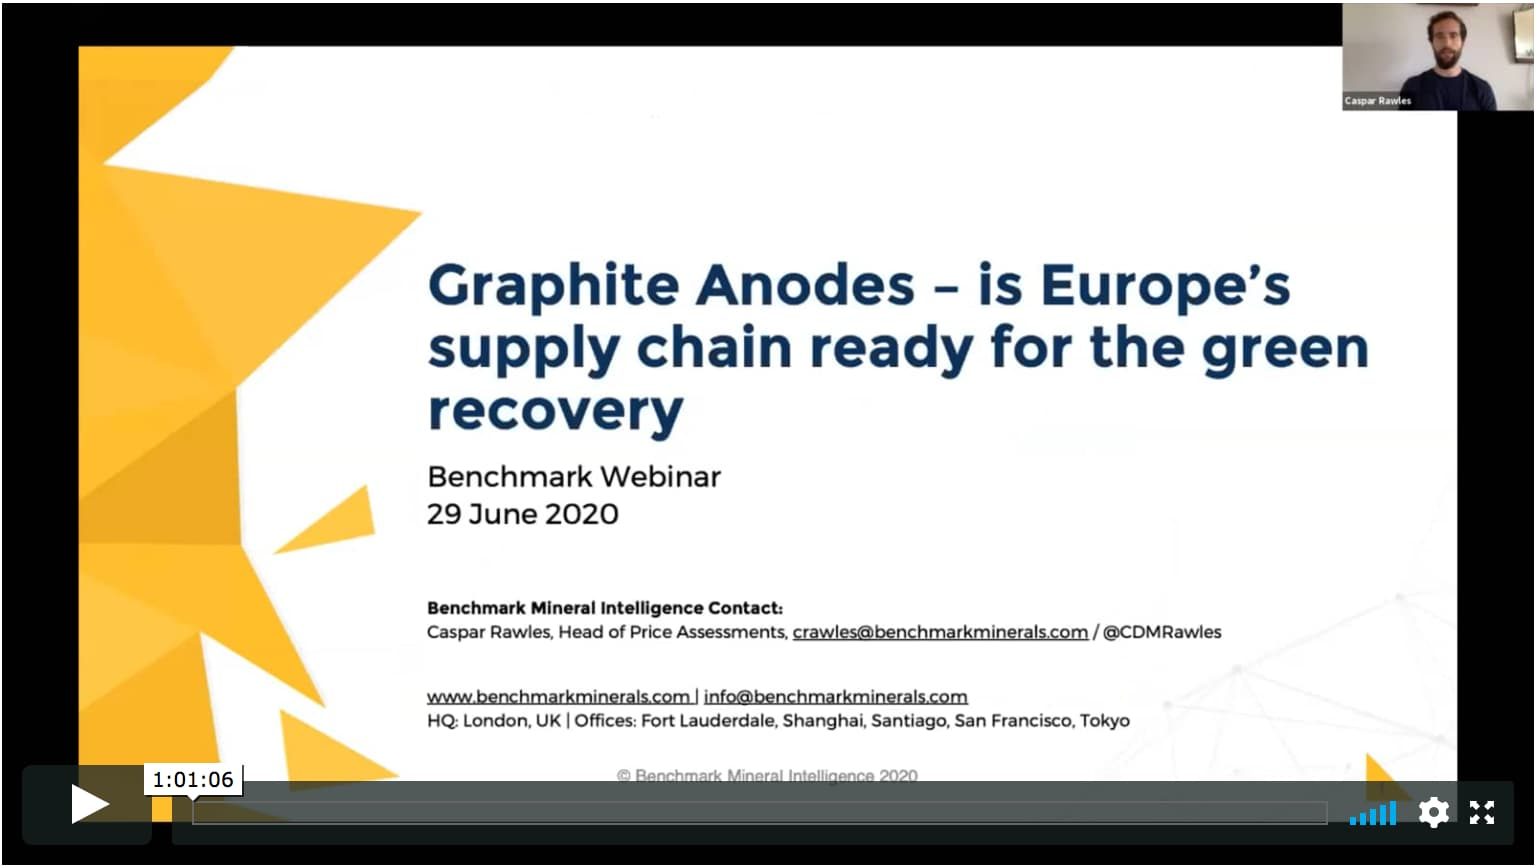 Graphite Anodes: Building a 21st Century Supply Chain in Europe